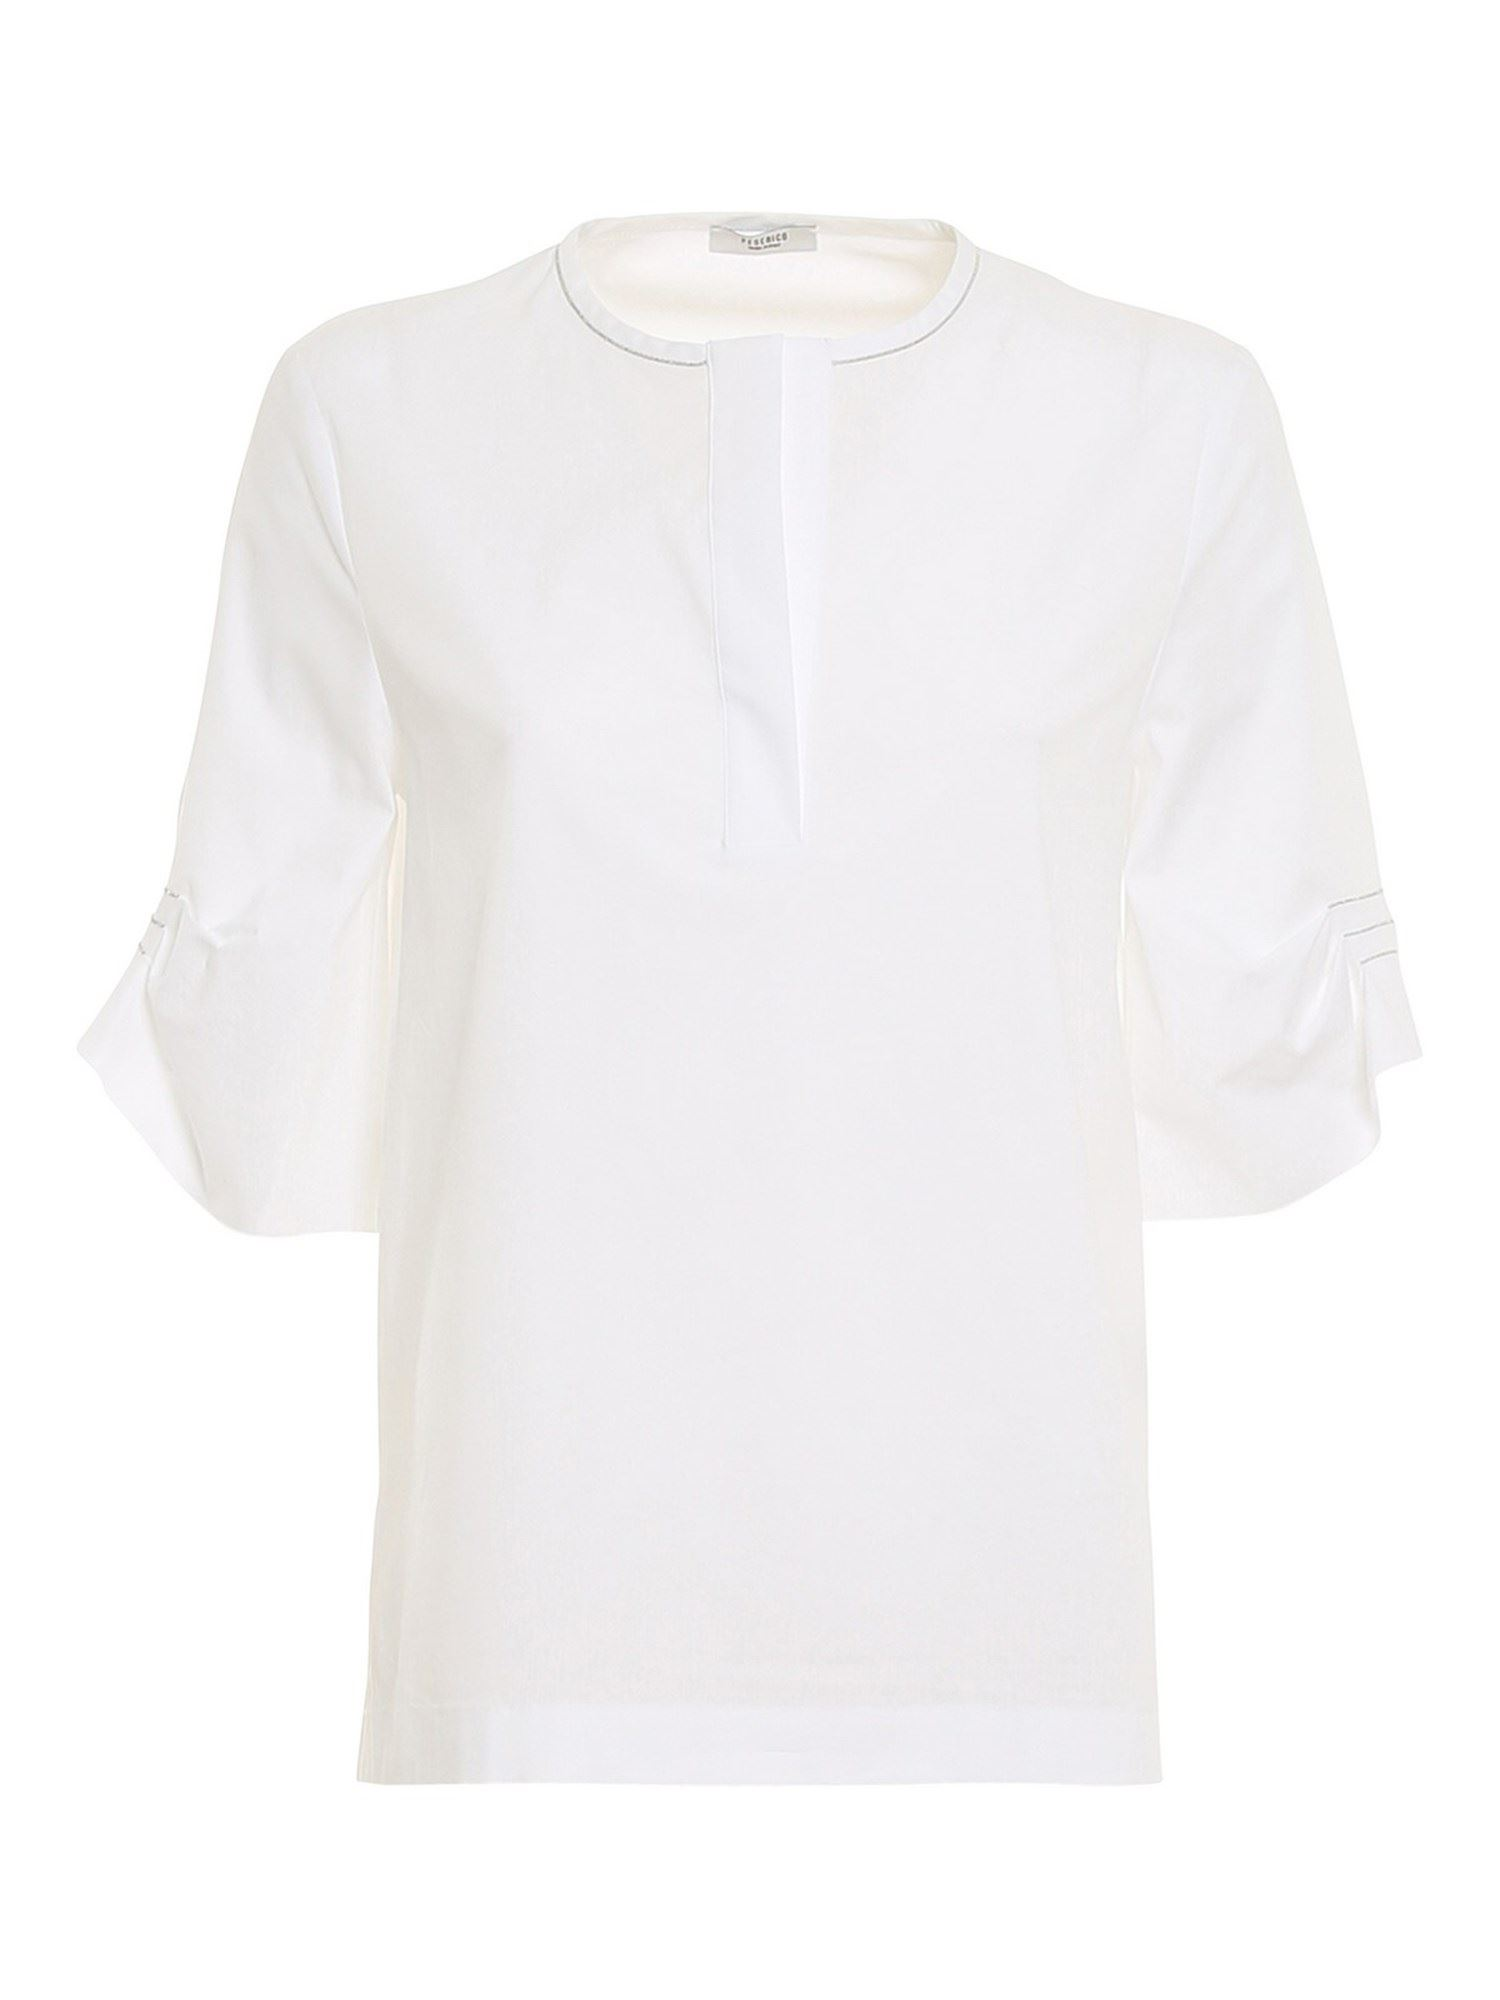 Peserico CREW-NECK BLOUSE IN WHITE